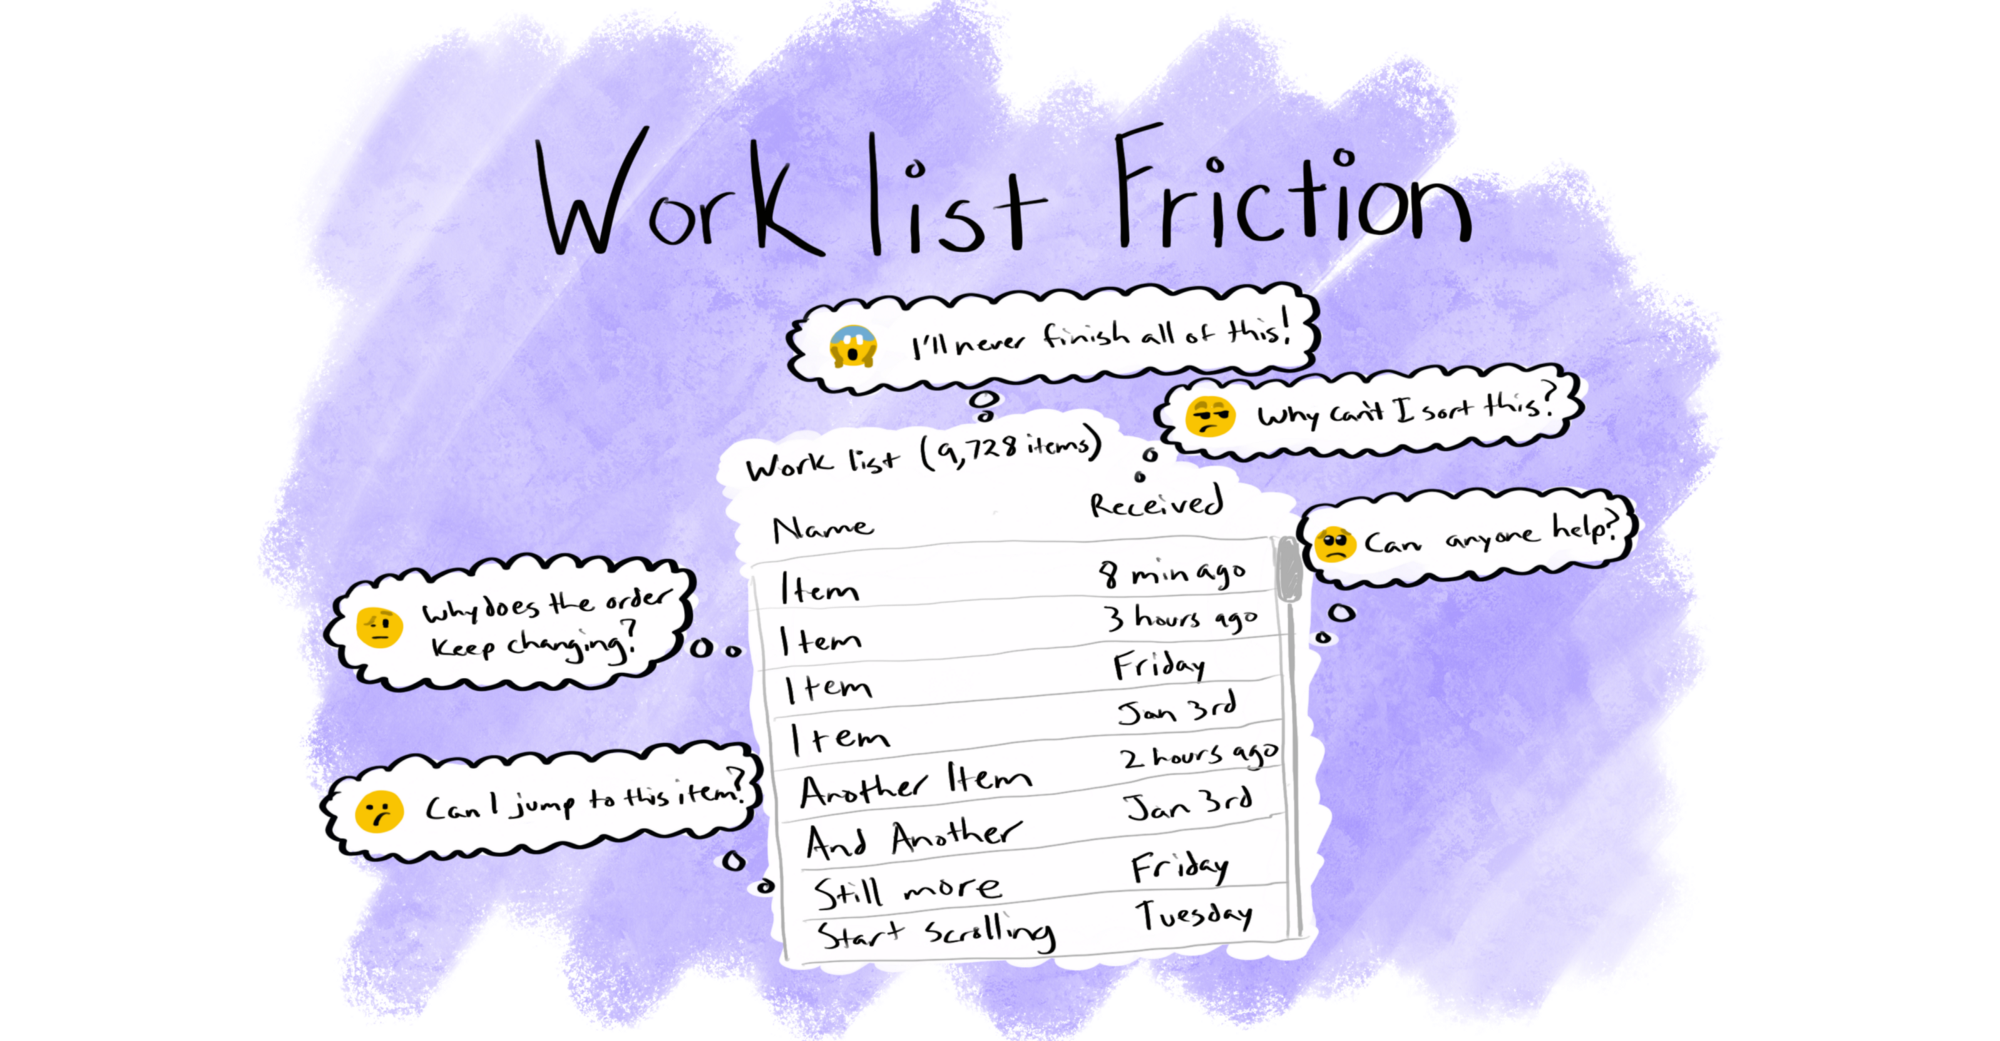 Work List UX Friction — Tackling user issues encountered when dealing with work lists.